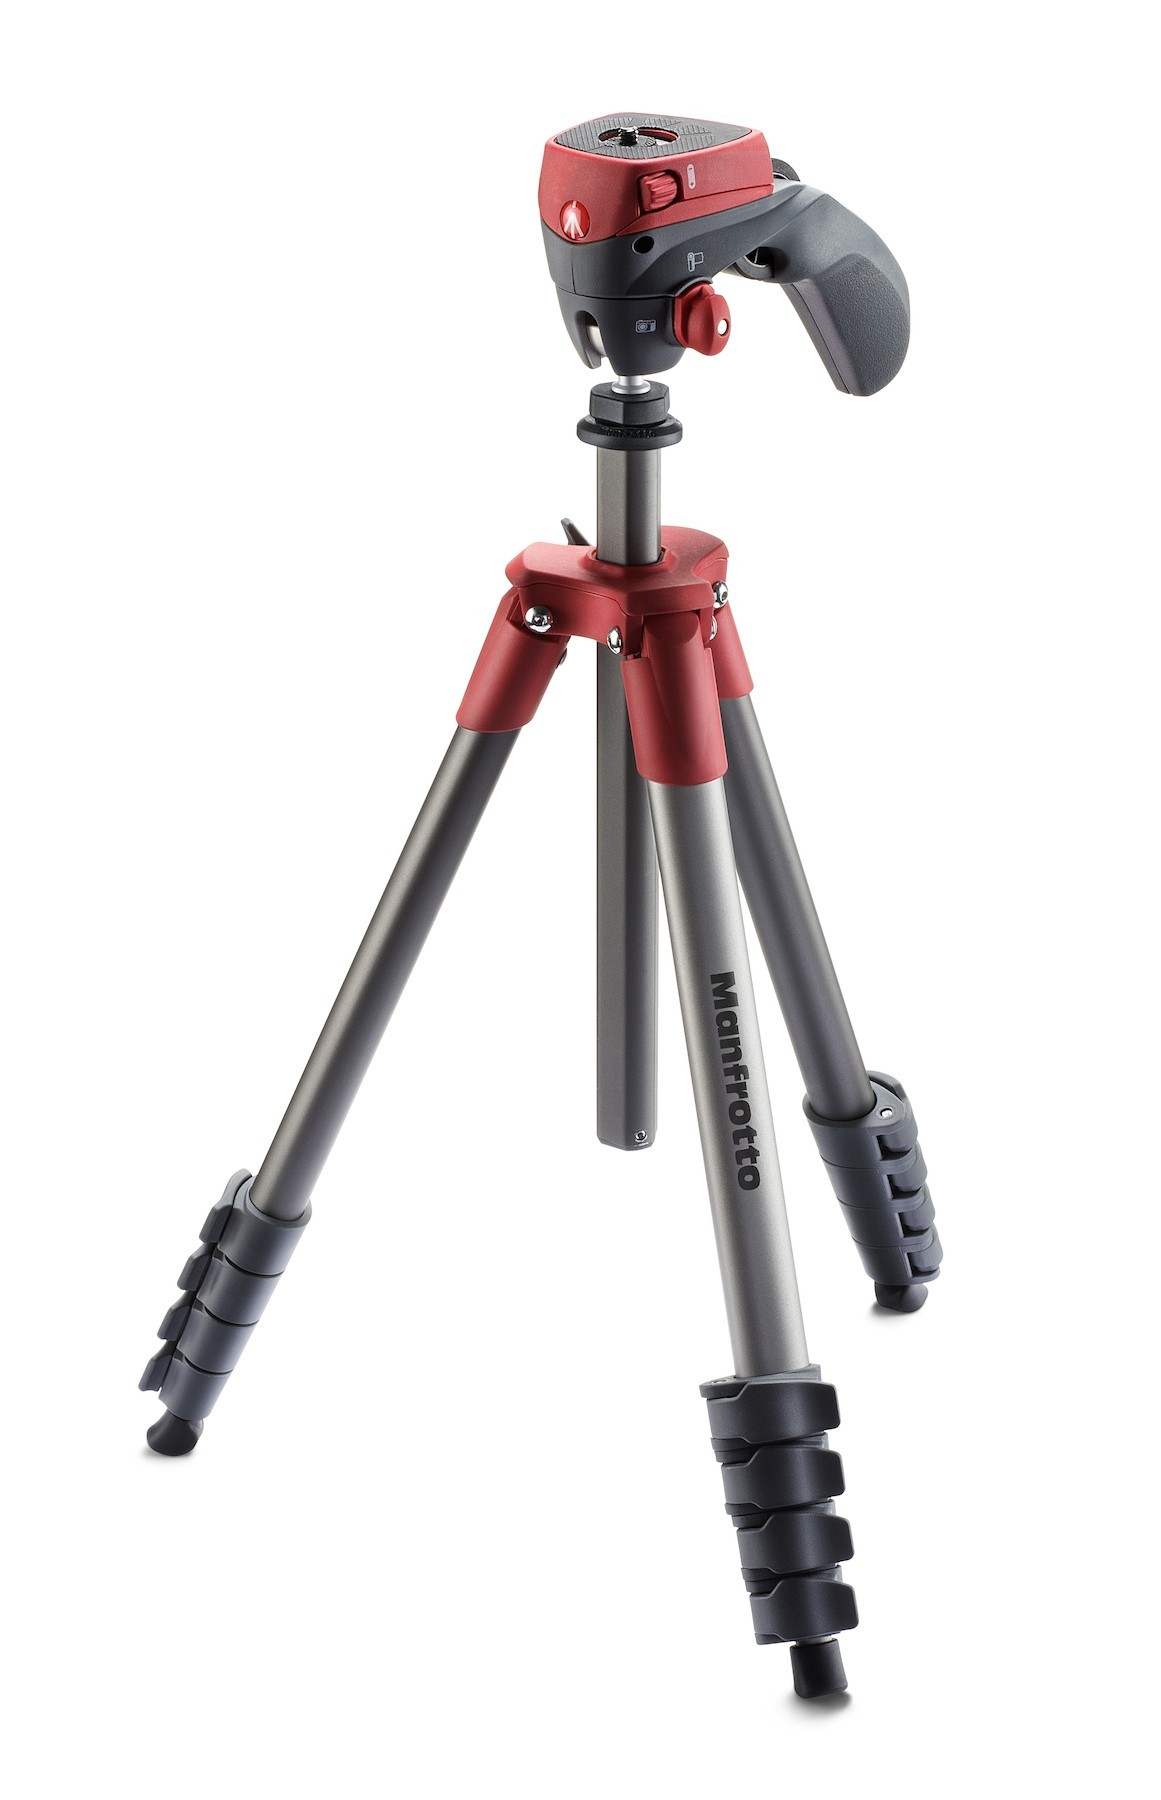 Manfrotto Treppiede Compact Action Testa Joystick Rosso